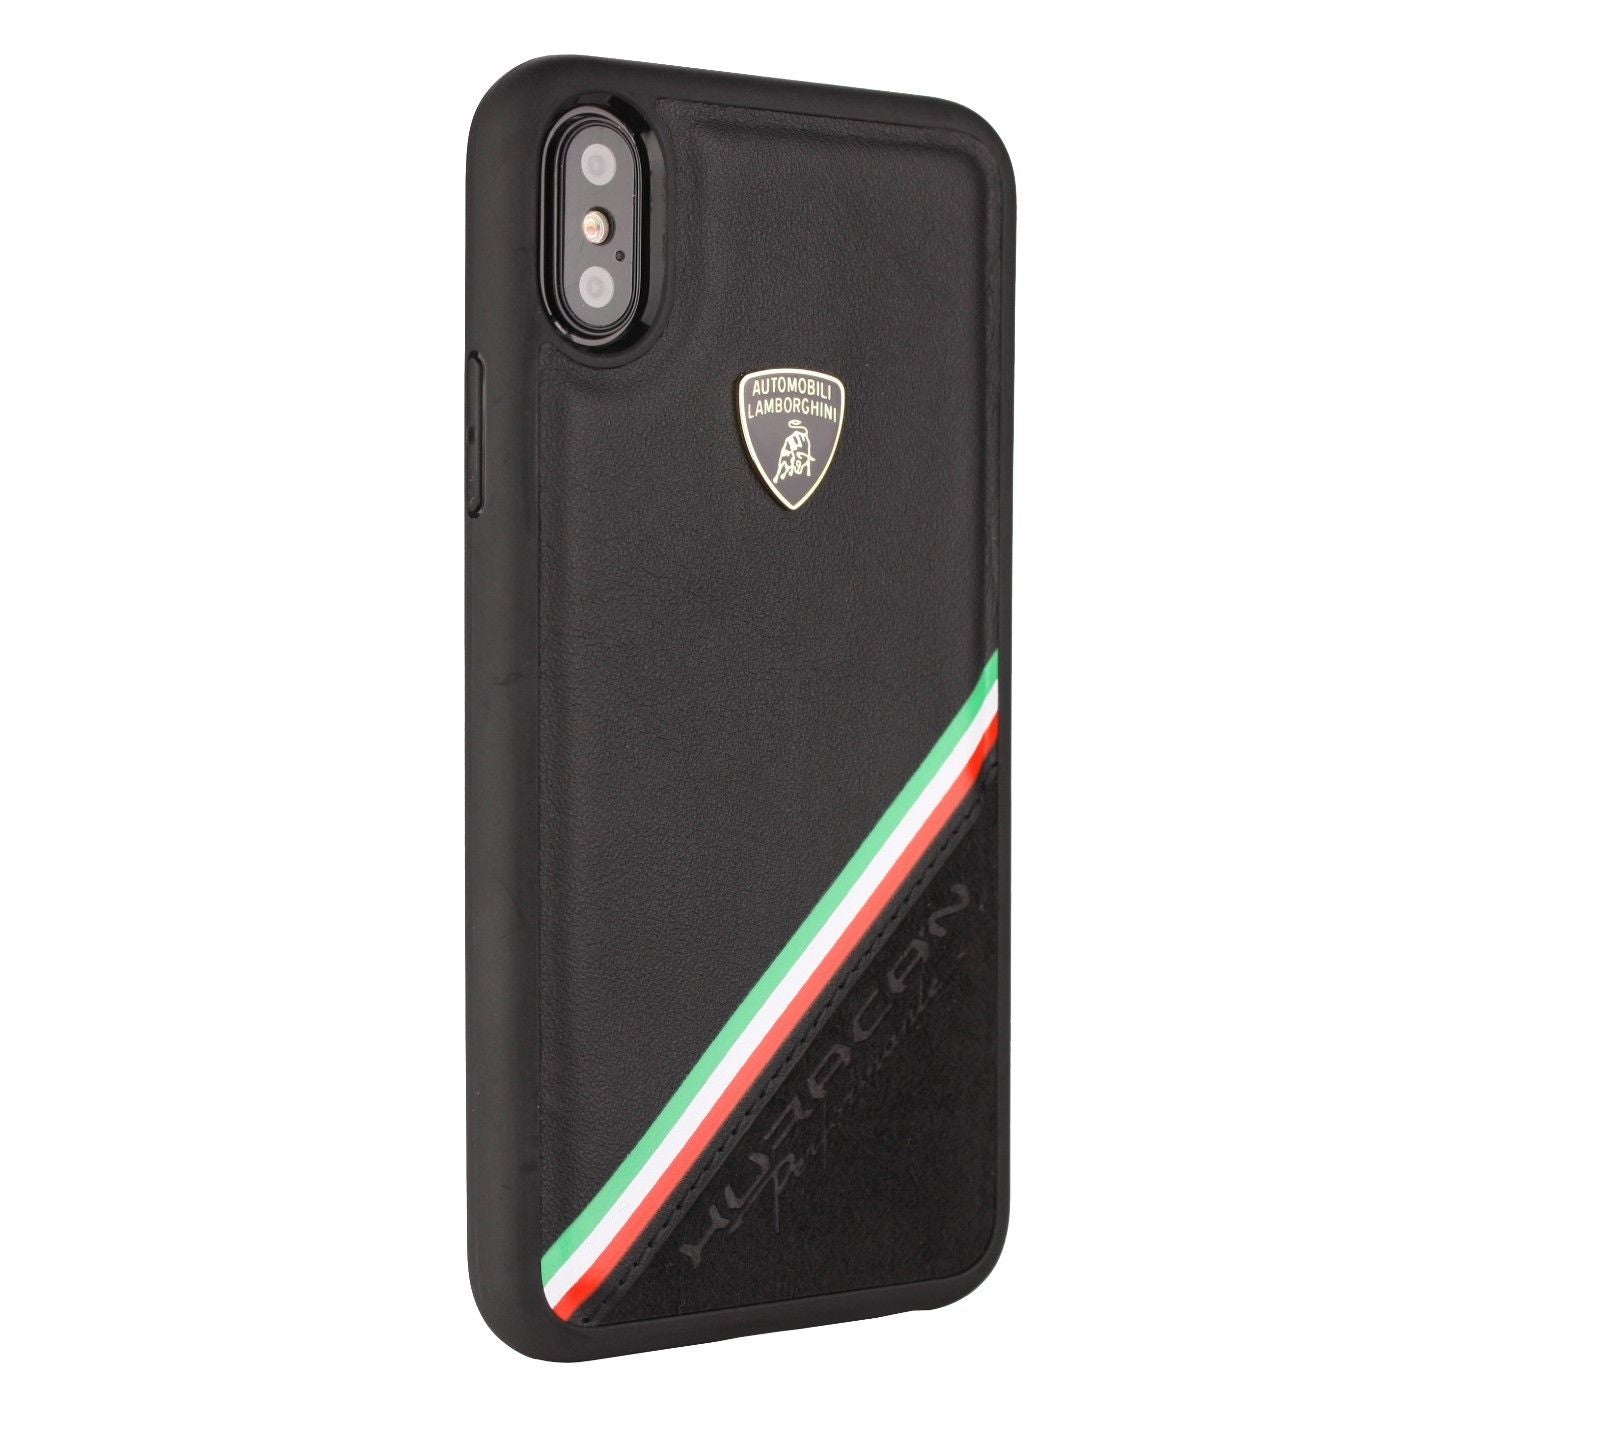 Luxury Genuine Leather & Carbon Fiber Hybrid Official Lamborghini Huracan D11 Series Drop Protection Back Case Cover for Apple iPhone X / XS 2018